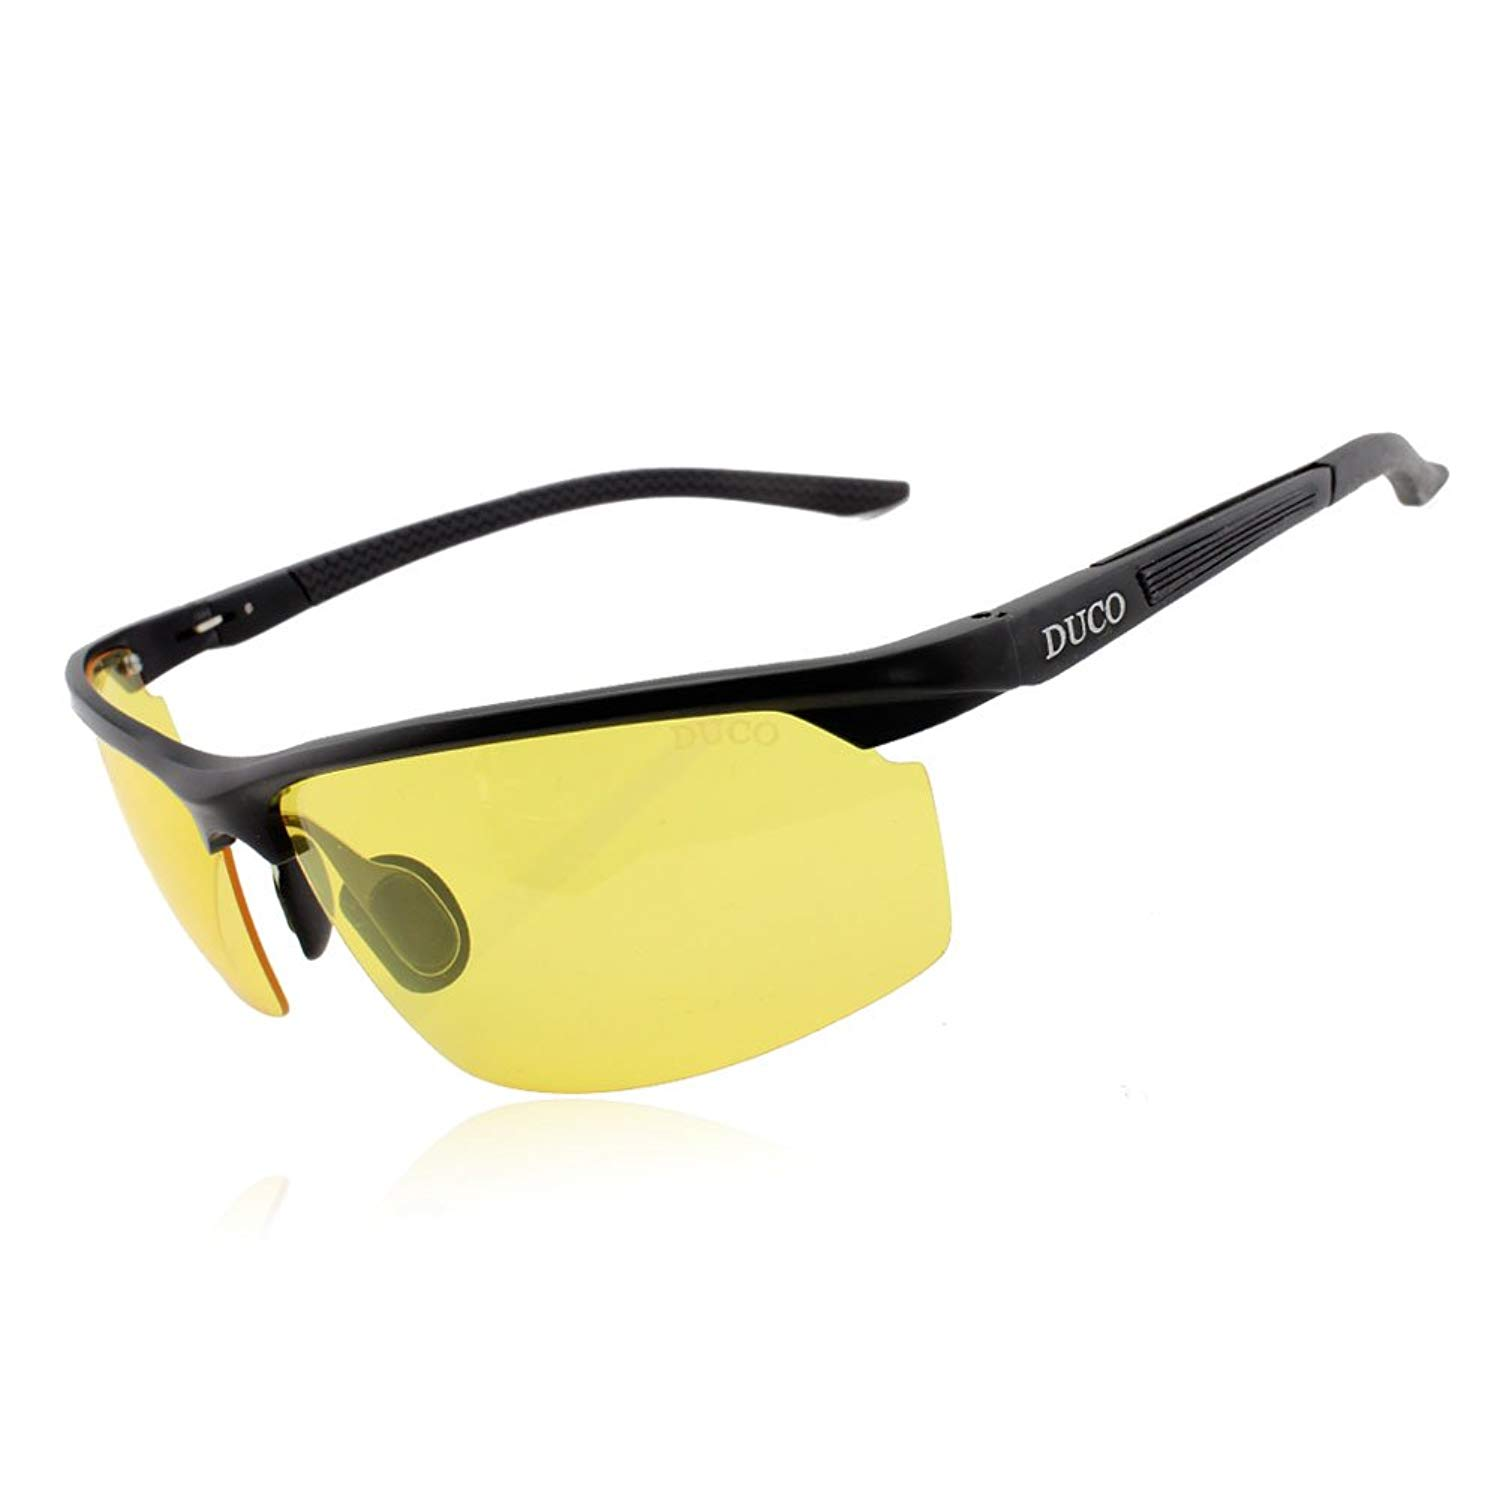 a105743d64 Get Quotations · Duco Night vision Driving Glasses For Headlight Anti-glare  Polarized Eyewear 8529 (Black frame